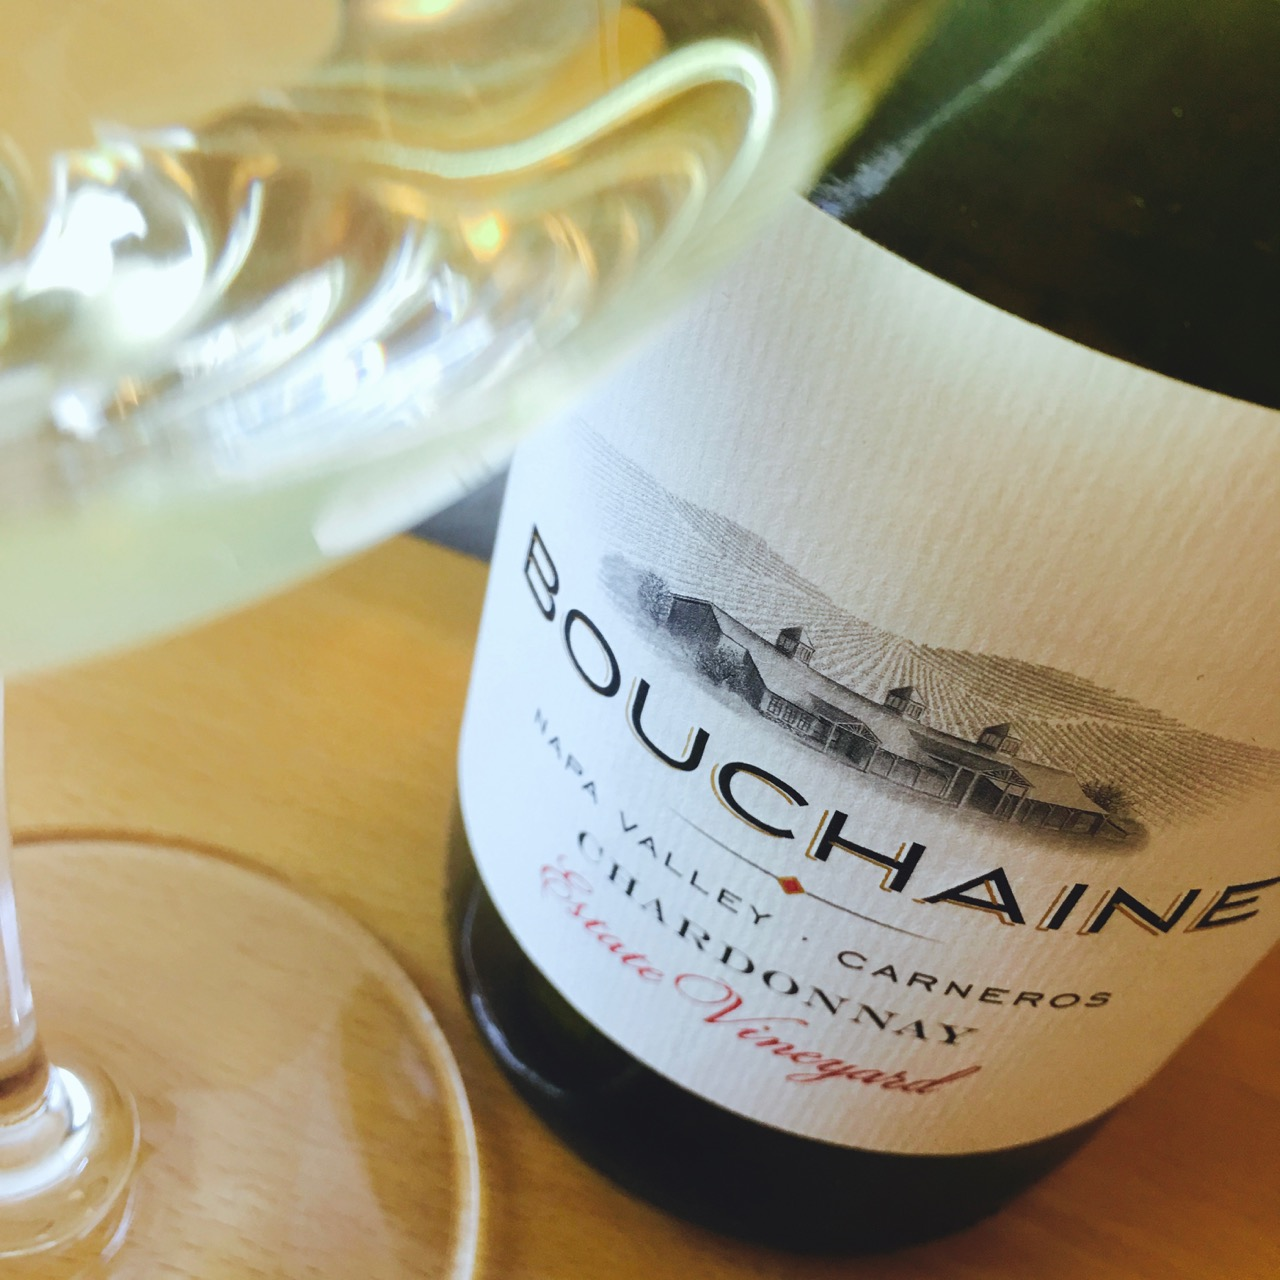 2013 Bouchaine Estate Chardonnay Carneros, Napa Valley